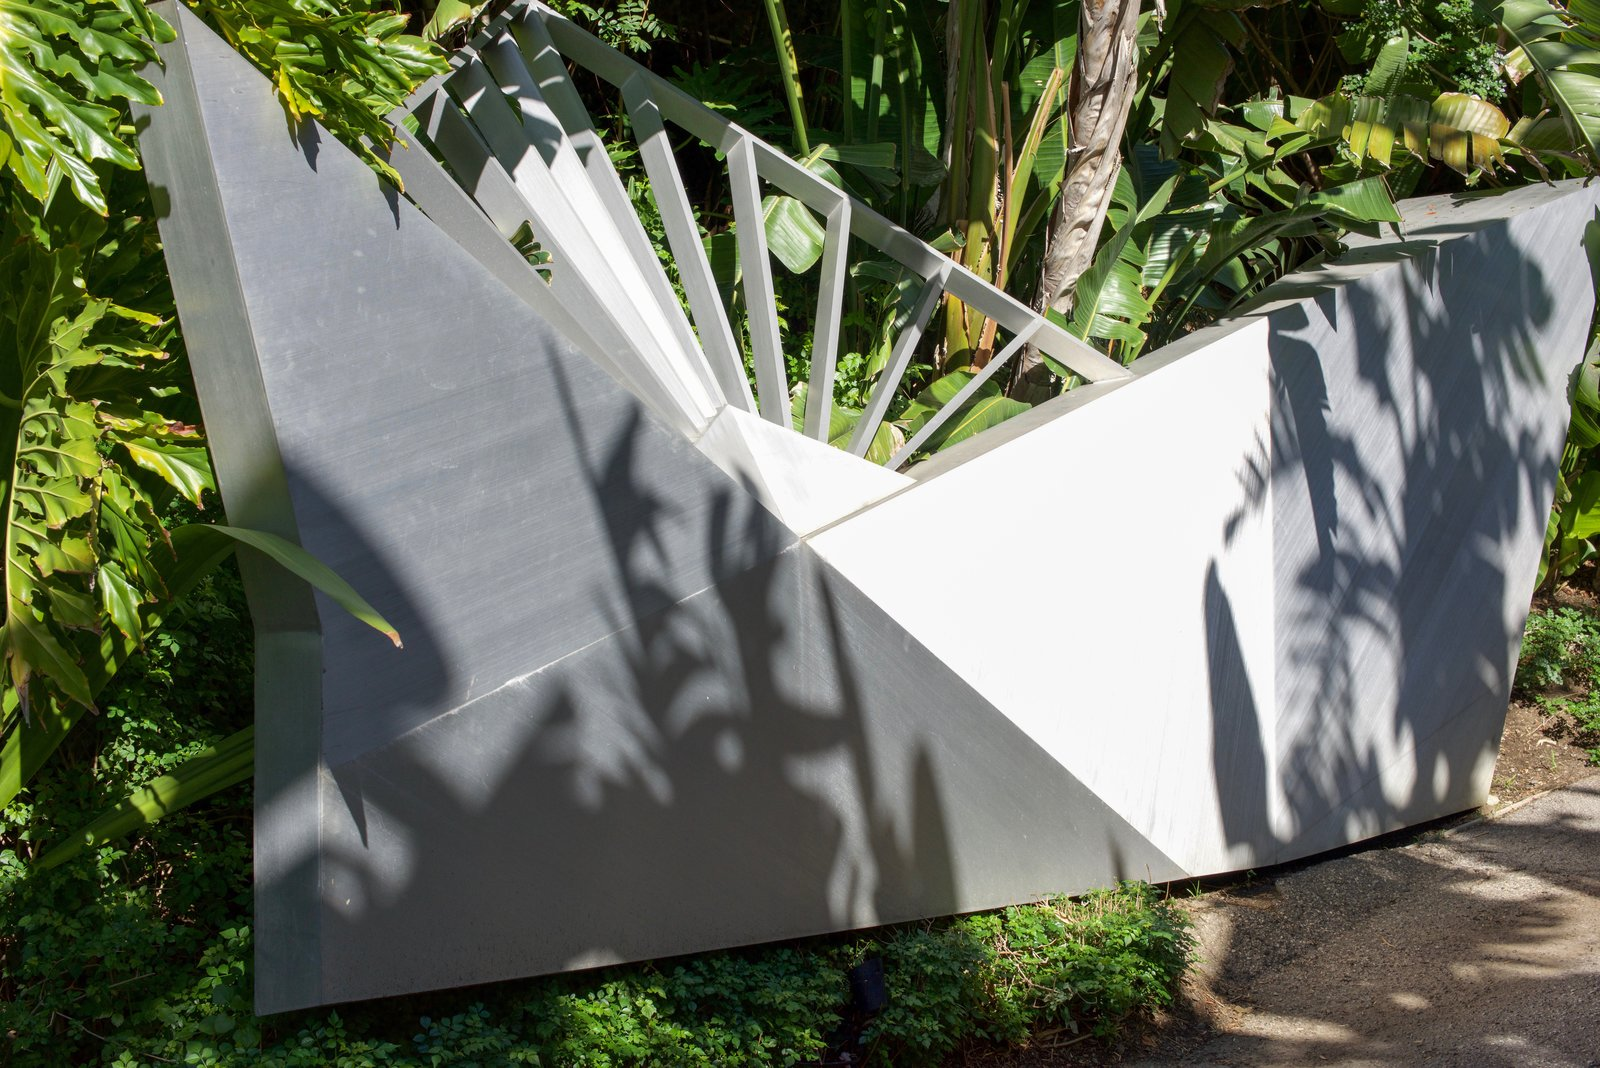 The long stroll down the driveway is lined with angular pieces of metalwork, like the one shown here.